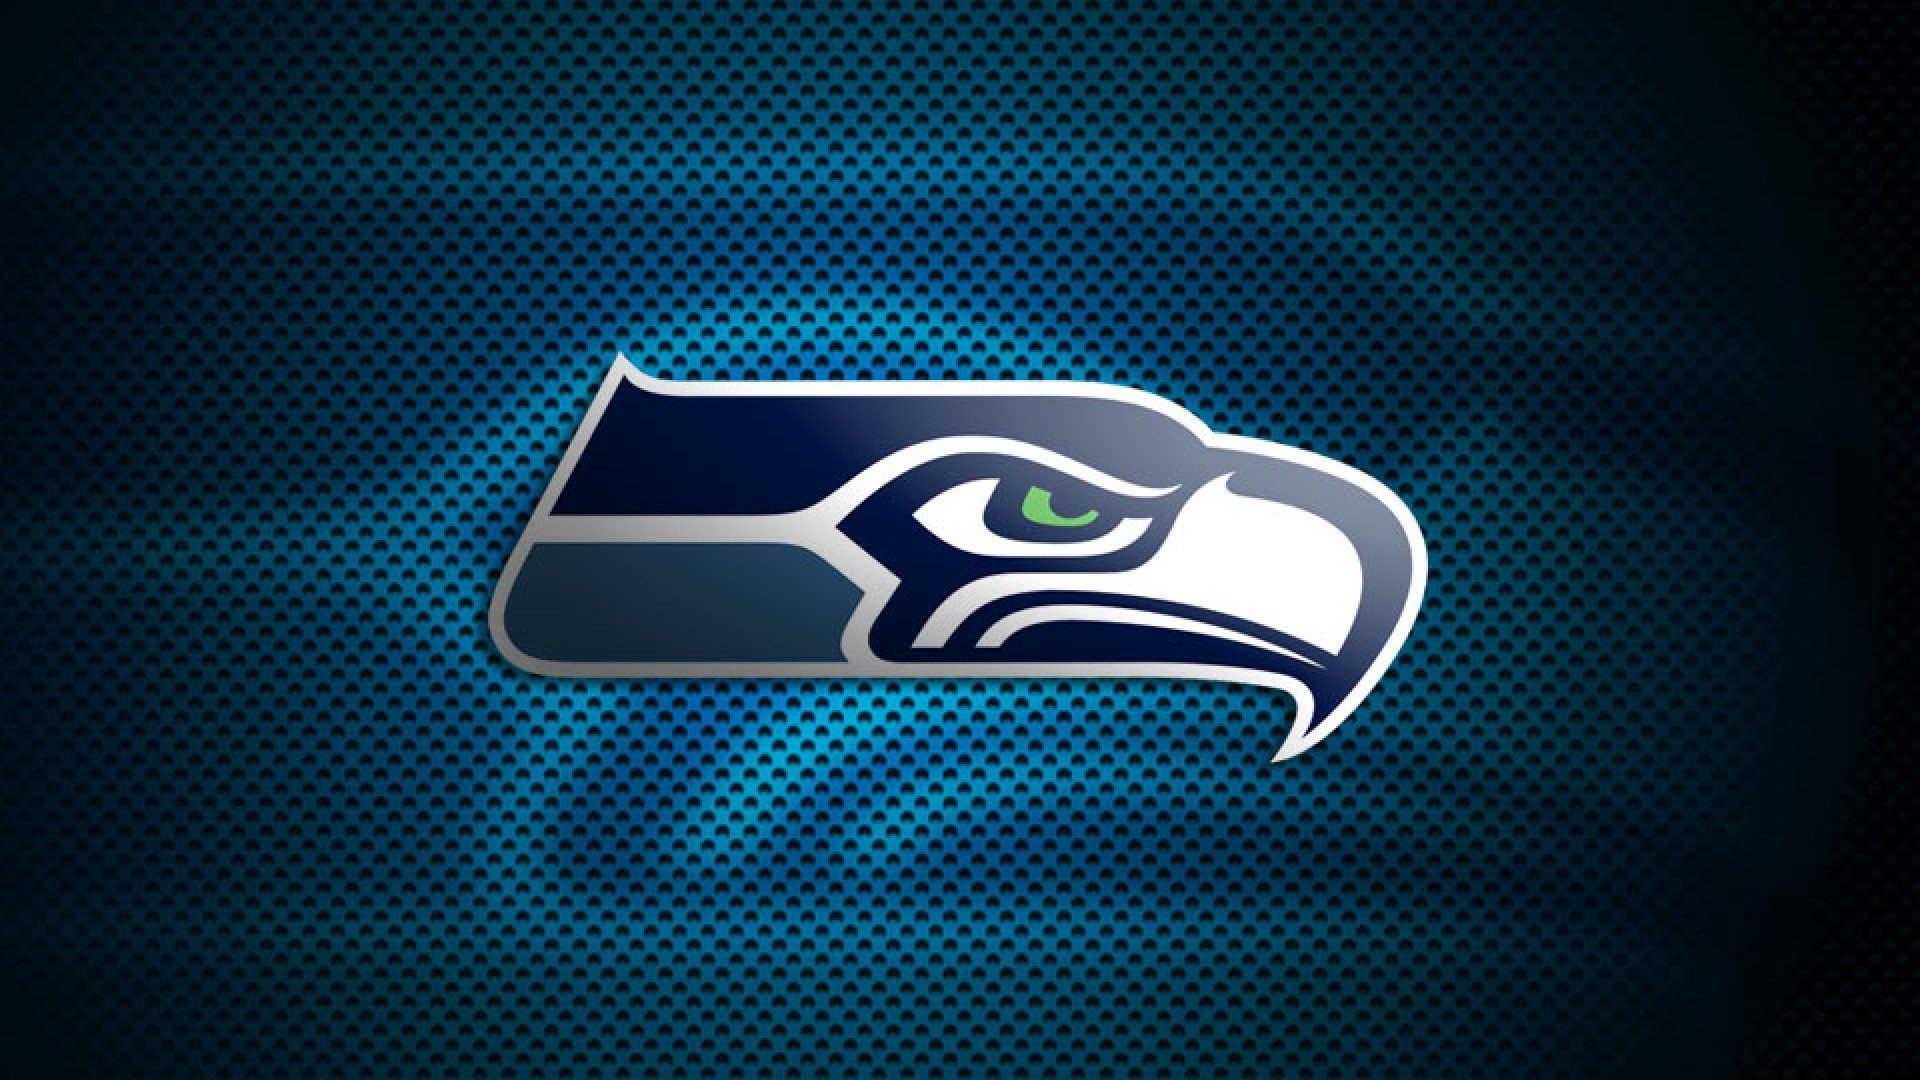 Shop Seattle Seahawks Apparel Merchandise and Fan Gear The Official Seattle Seahawks Shop is chock full with Seahawks Jerseys tshirts Hats and Sweatshirts from